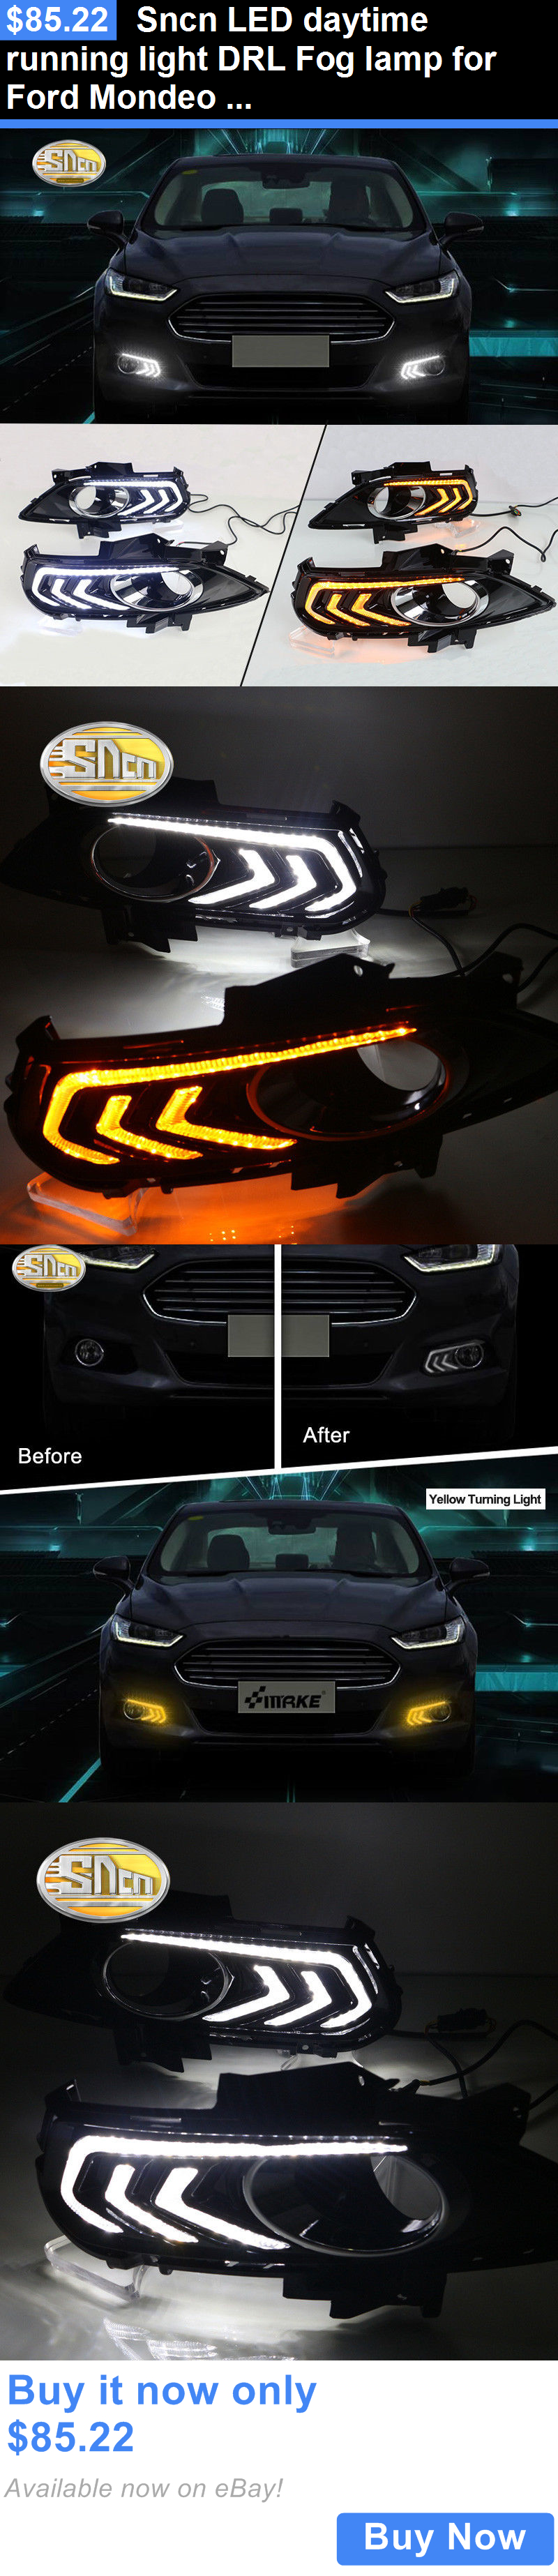 2019 ford fusion redesign www autoreleasenew com pinterest ford fusion and ford